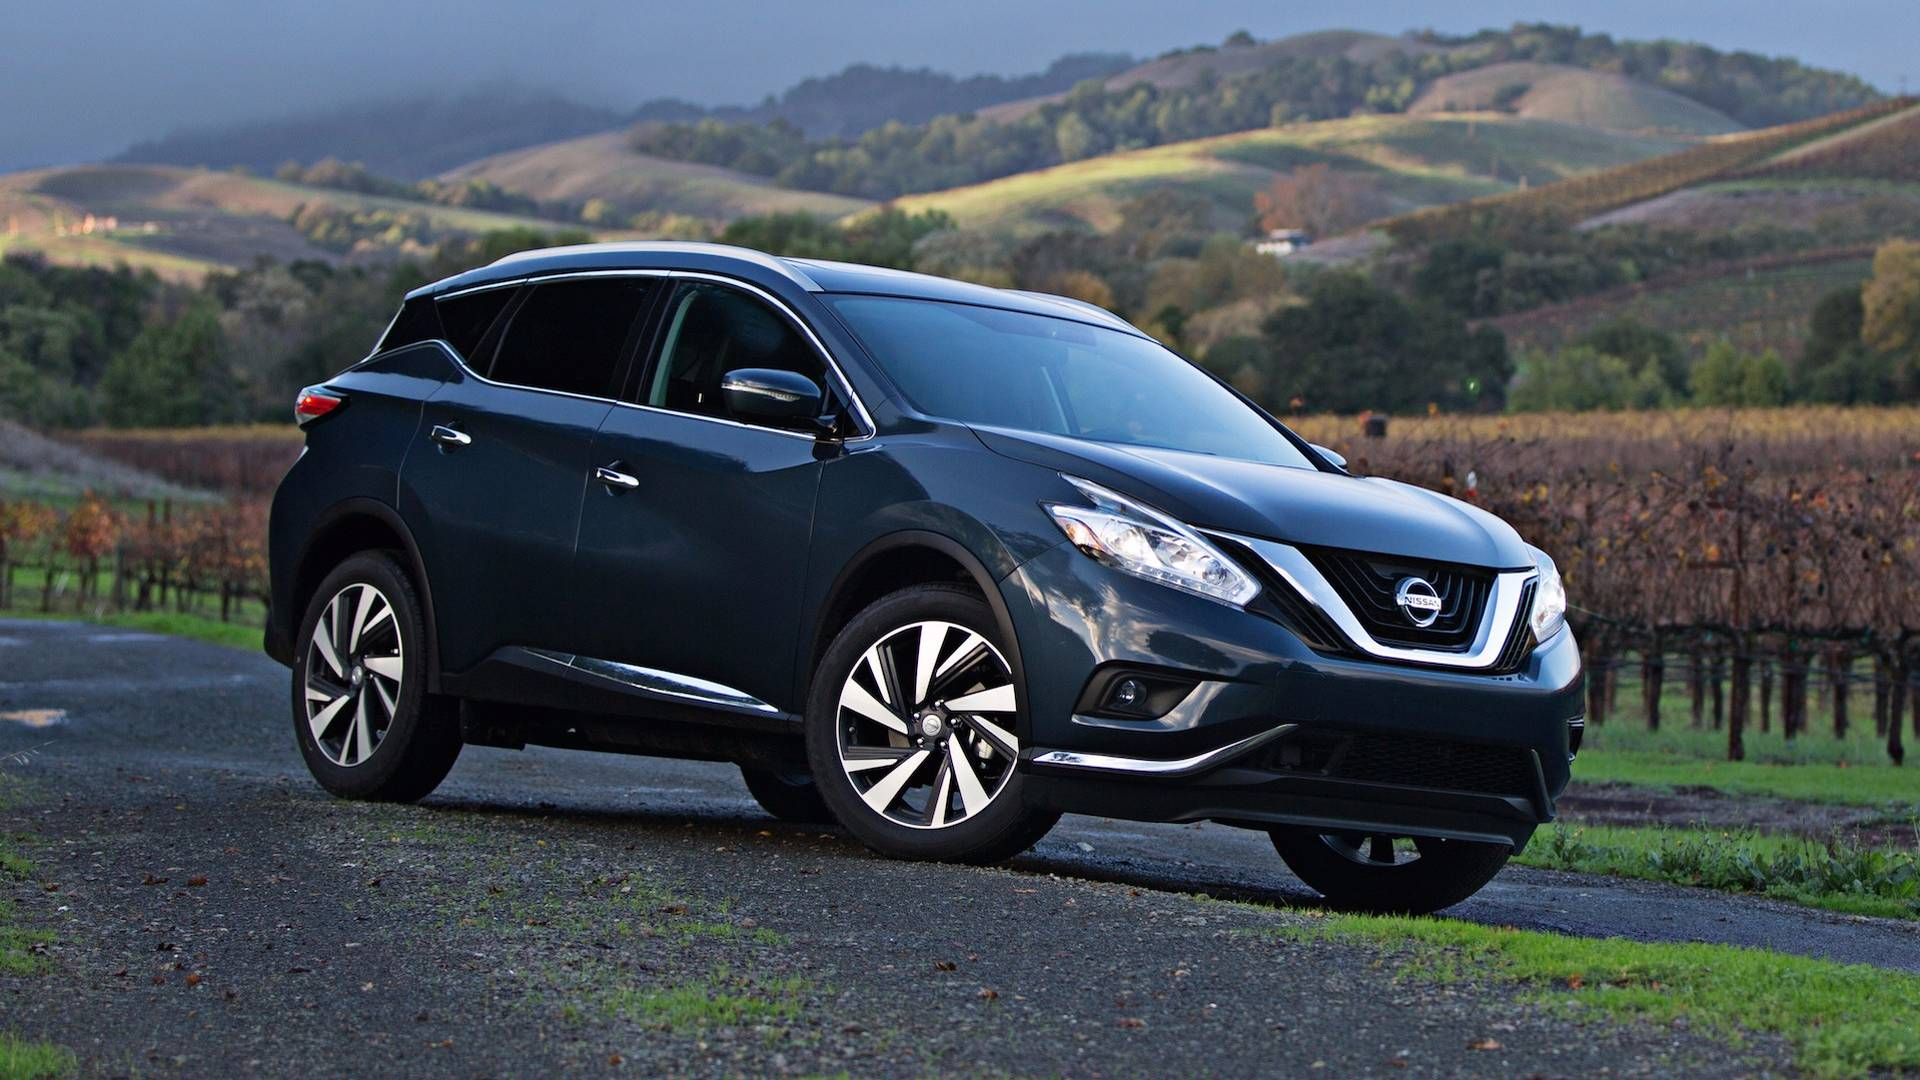 2018 Nissan Murano Gets More Standard Features Slight Price Bump